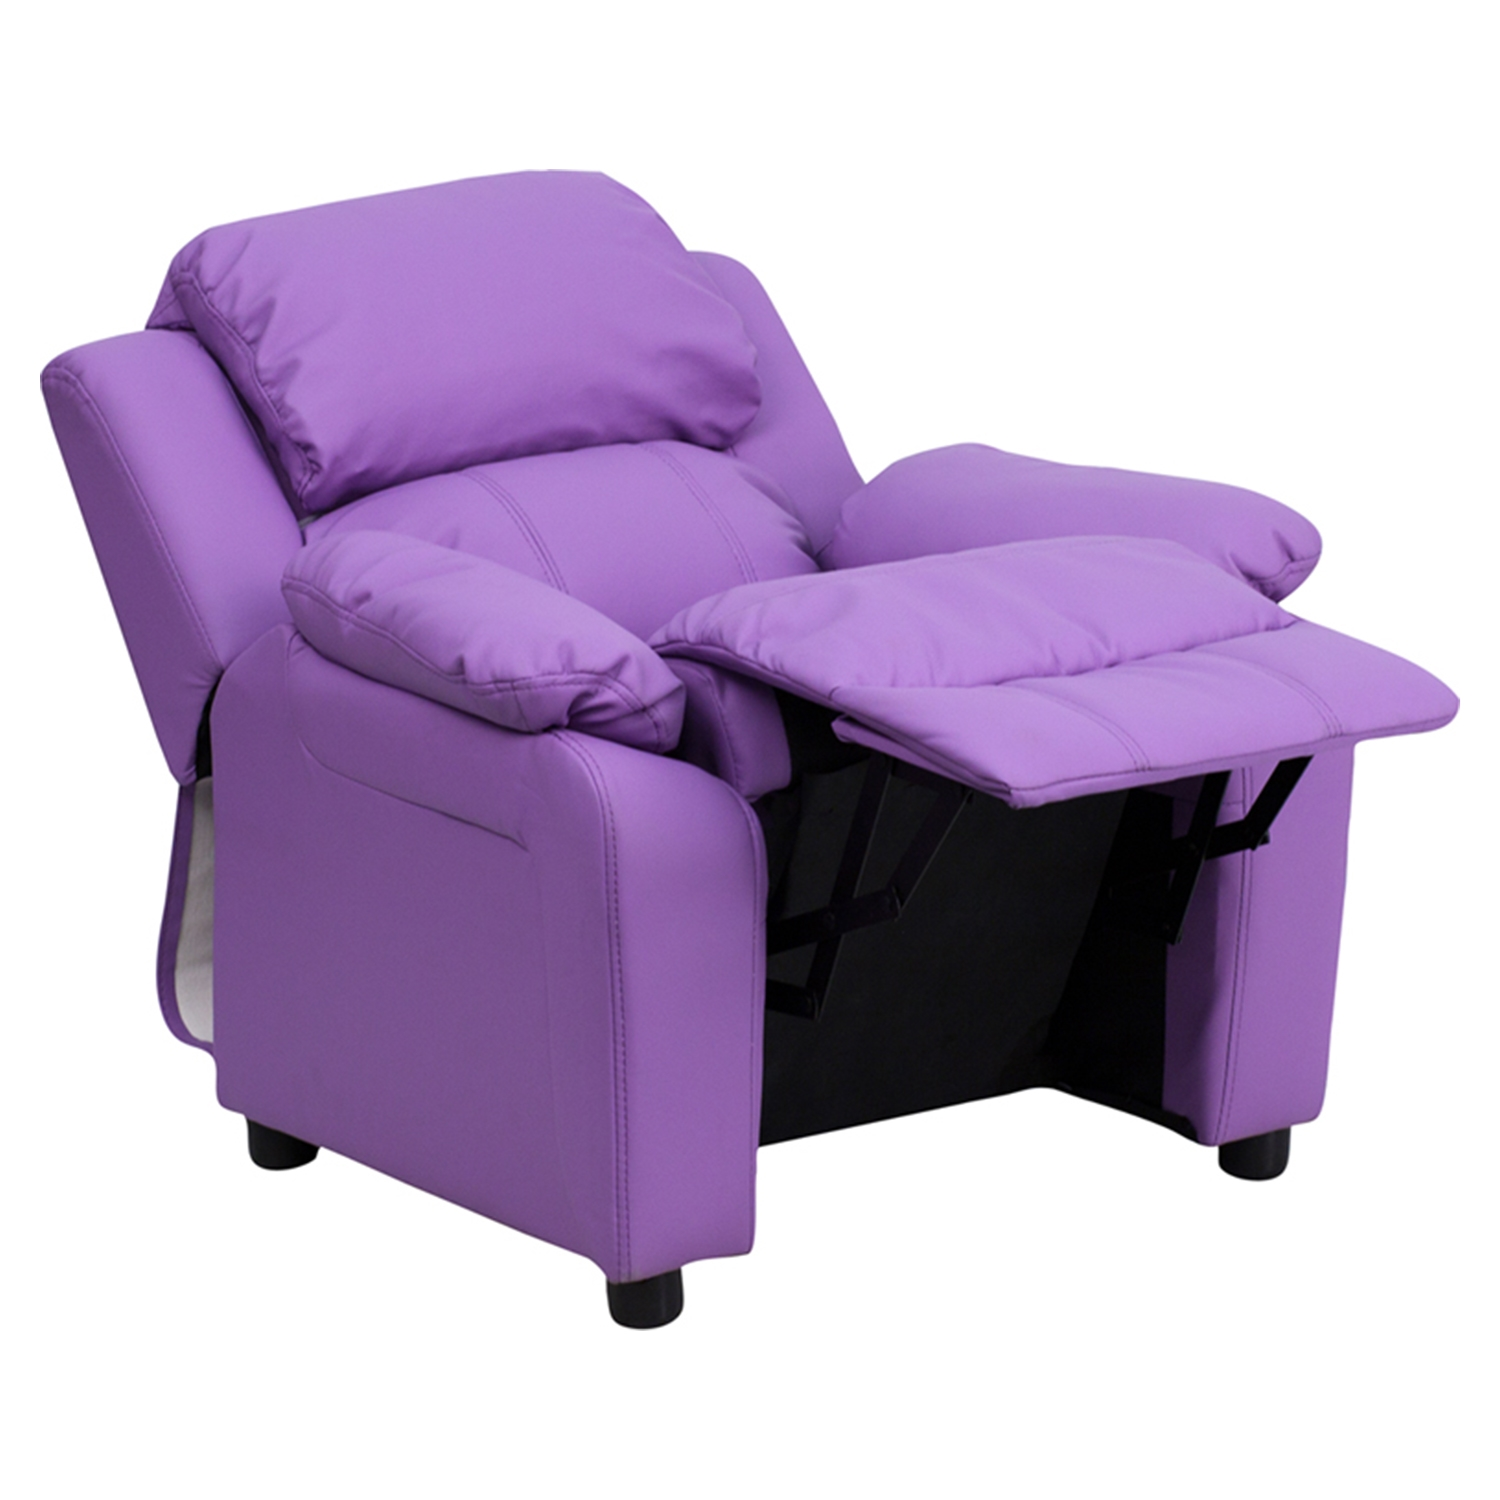 ... Deluxe Padded Upholstered Kids Recliner - Storage Arms Lavender - FLSH-BT-7985  sc 1 st  DCG Stores & Deluxe Padded Upholstered Kids Recliner - Storage Arms Lavender ... islam-shia.org